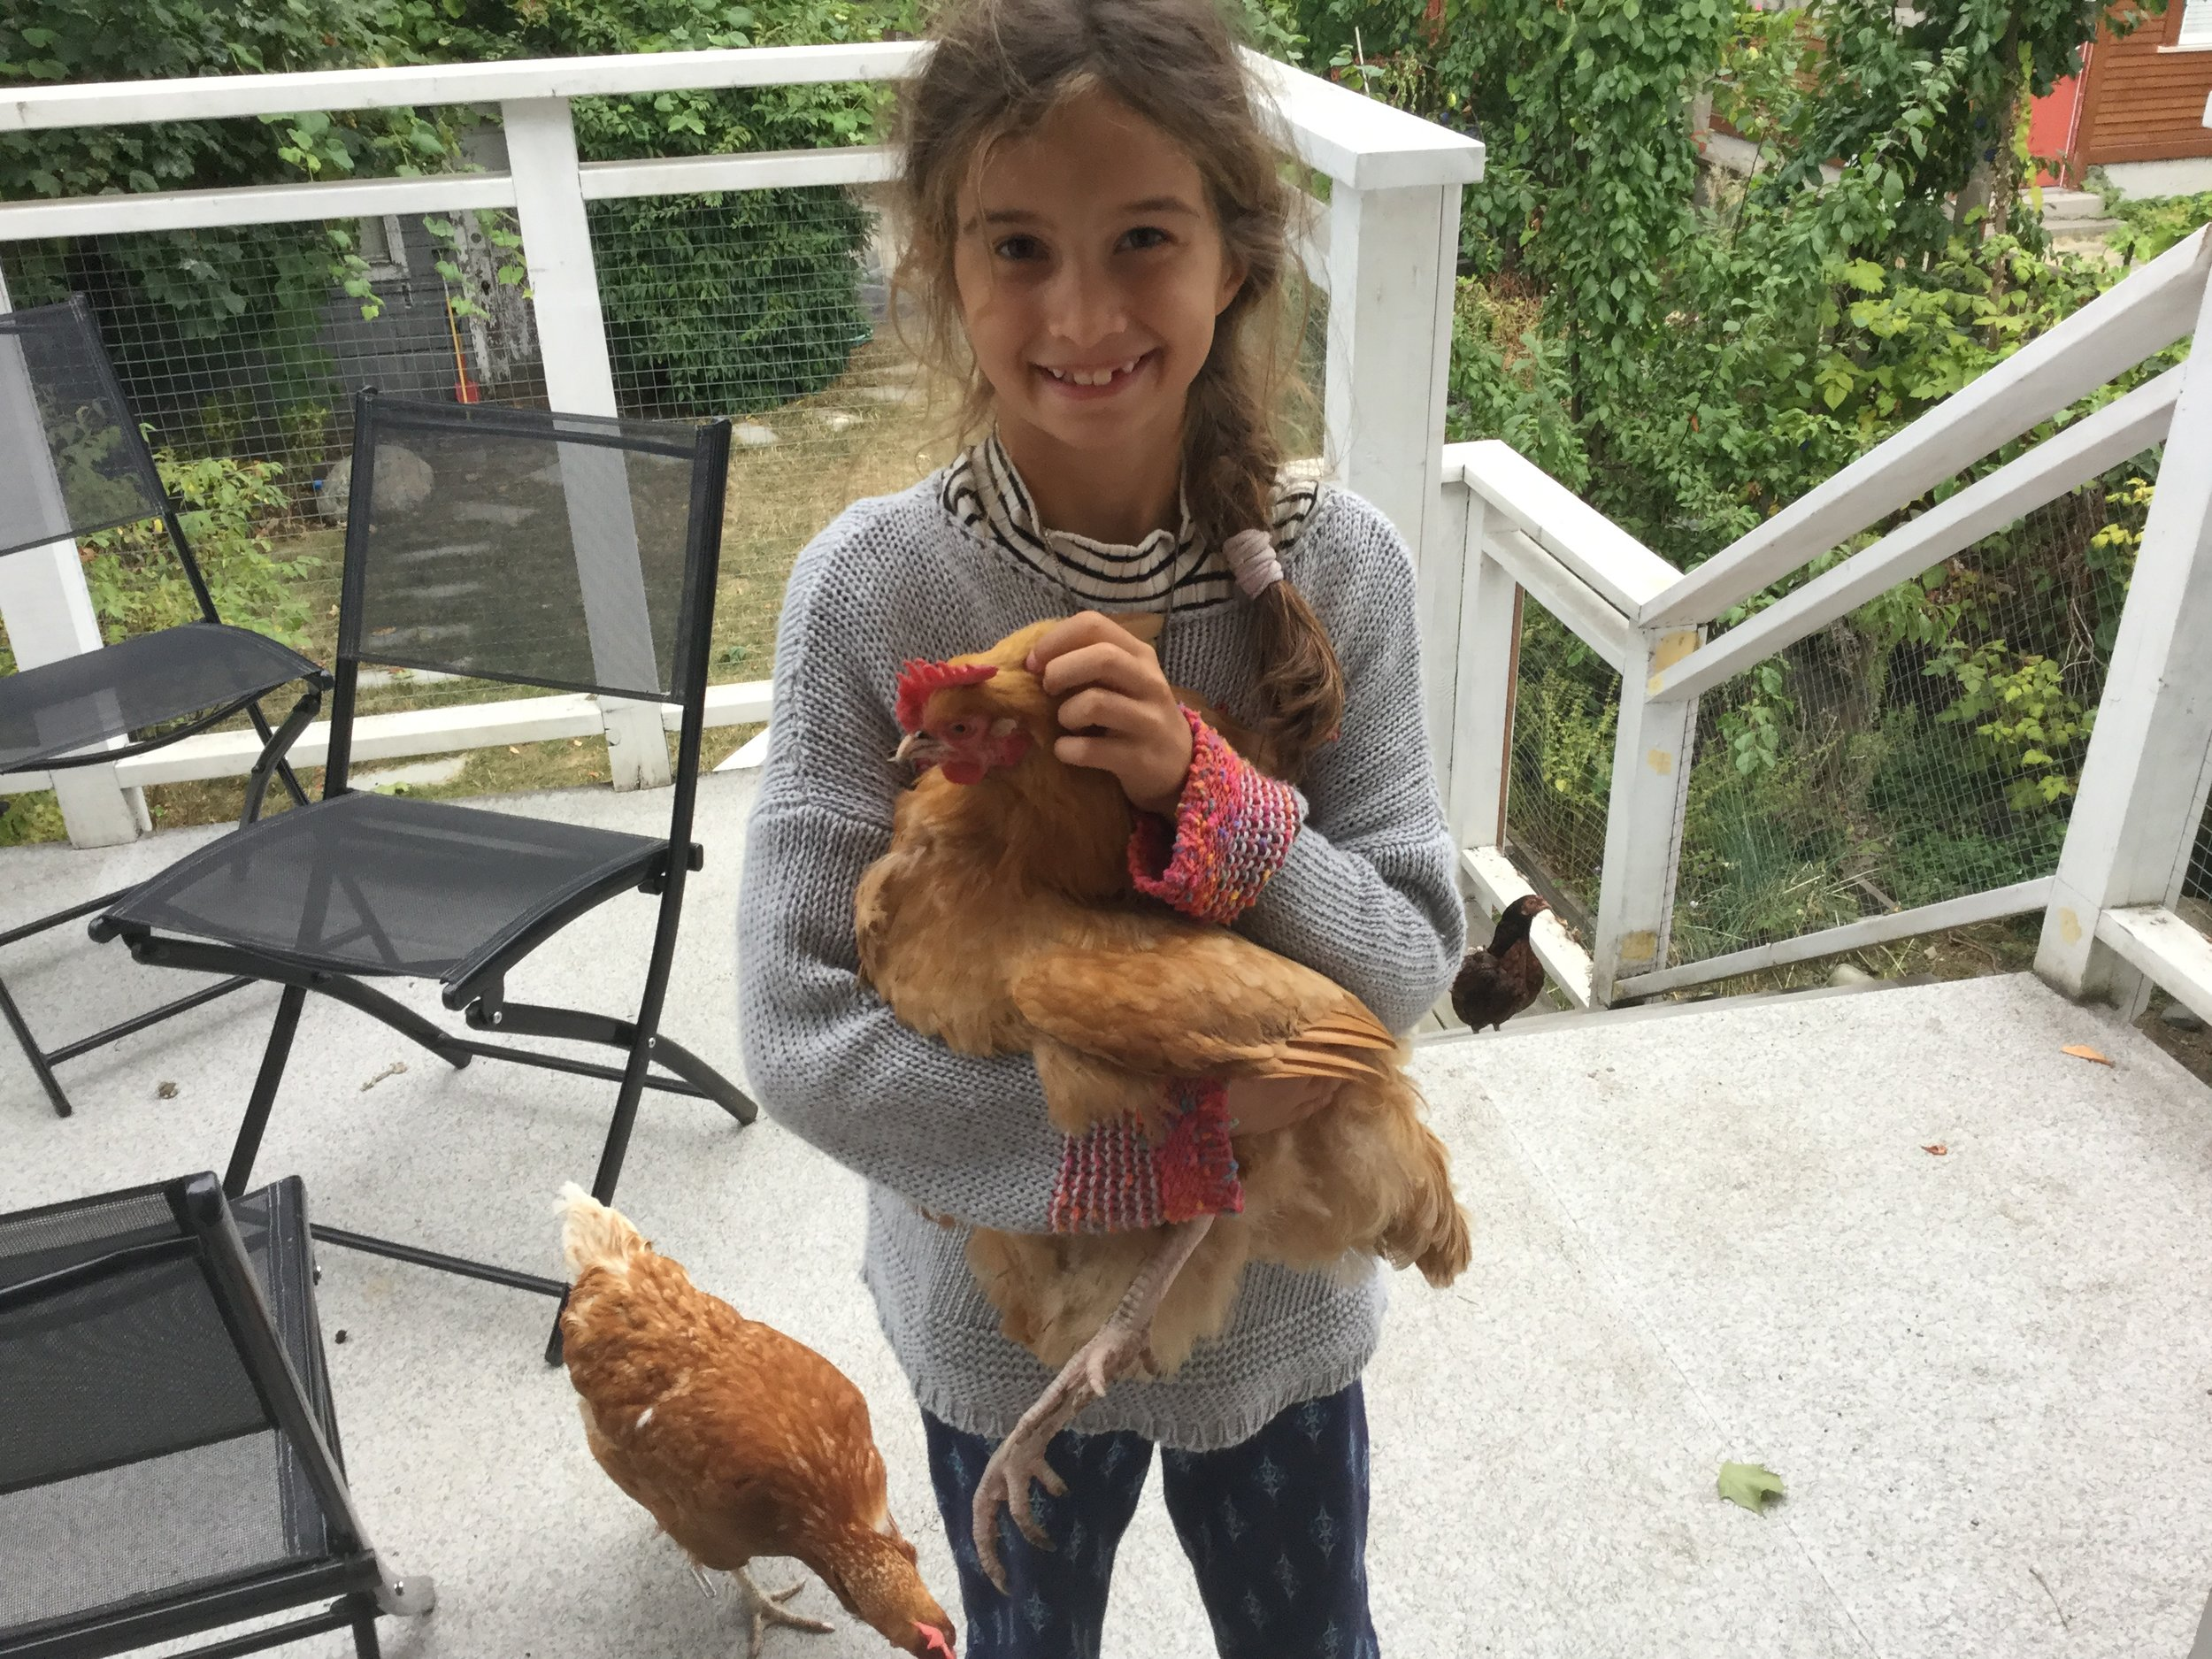 This one shows all three chickens: BigEye, Buffy and Bruna.